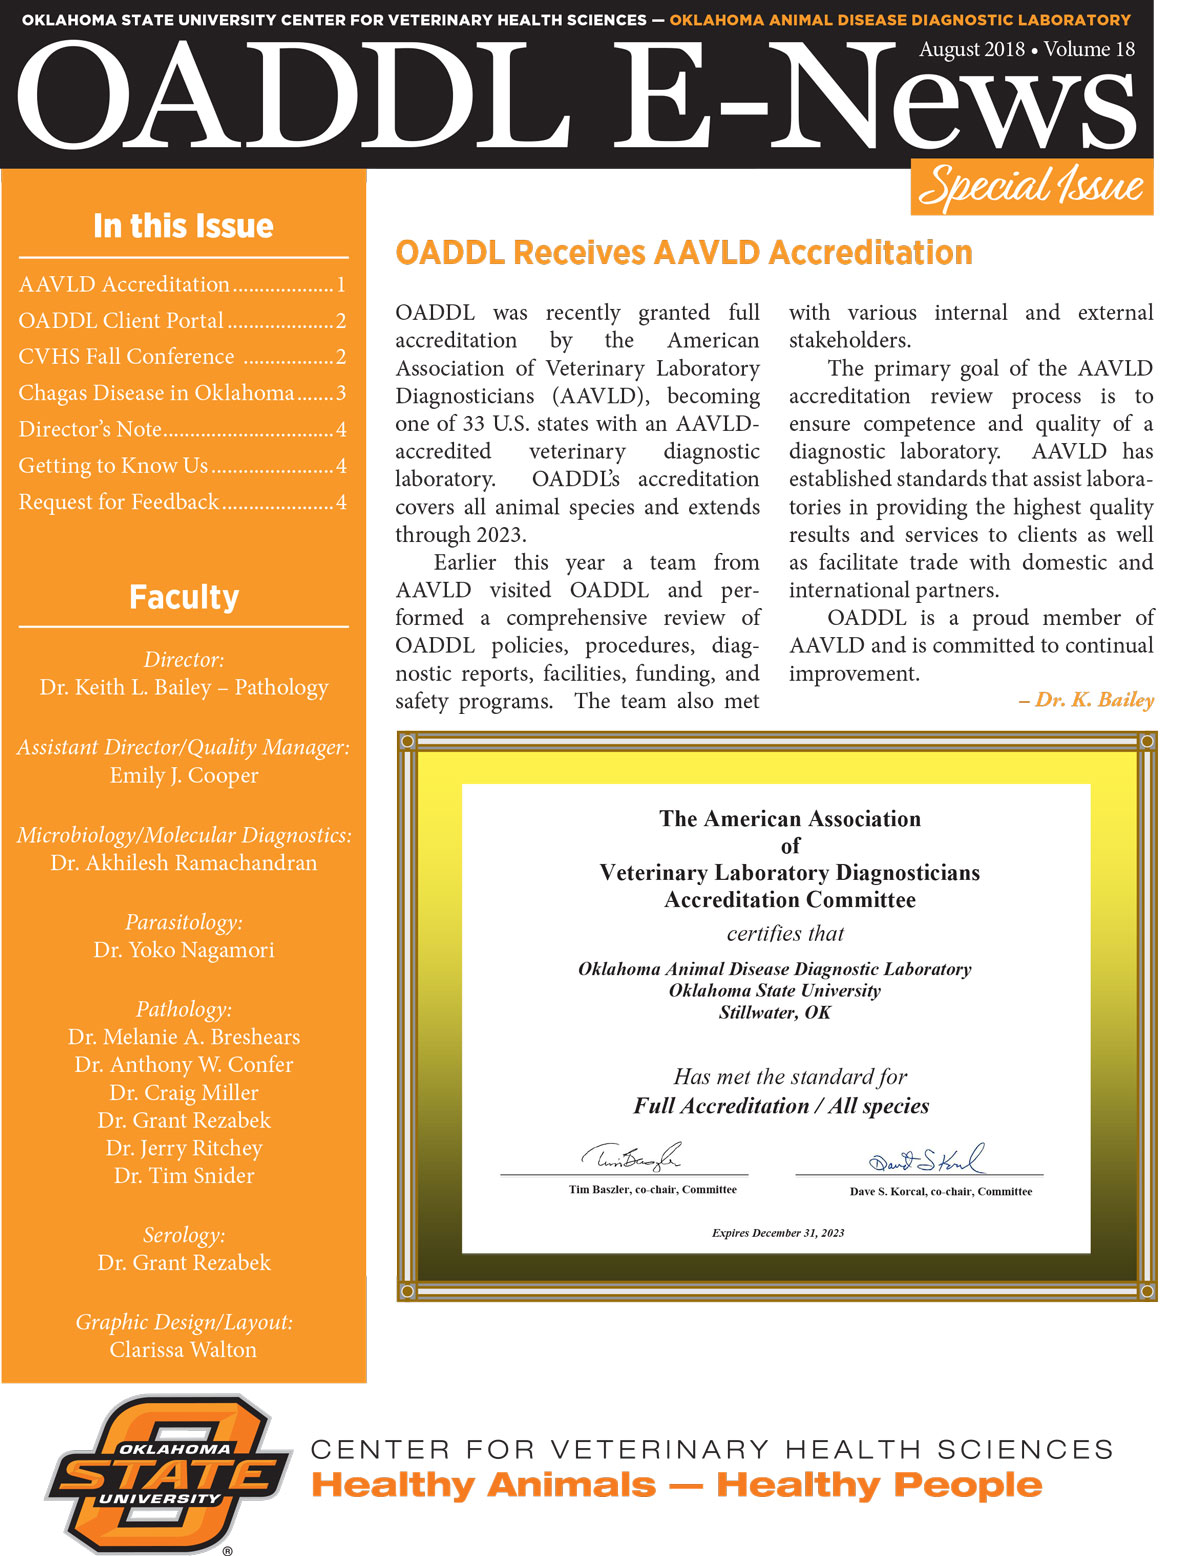 oaddl summer 2018special edition newsletter cover